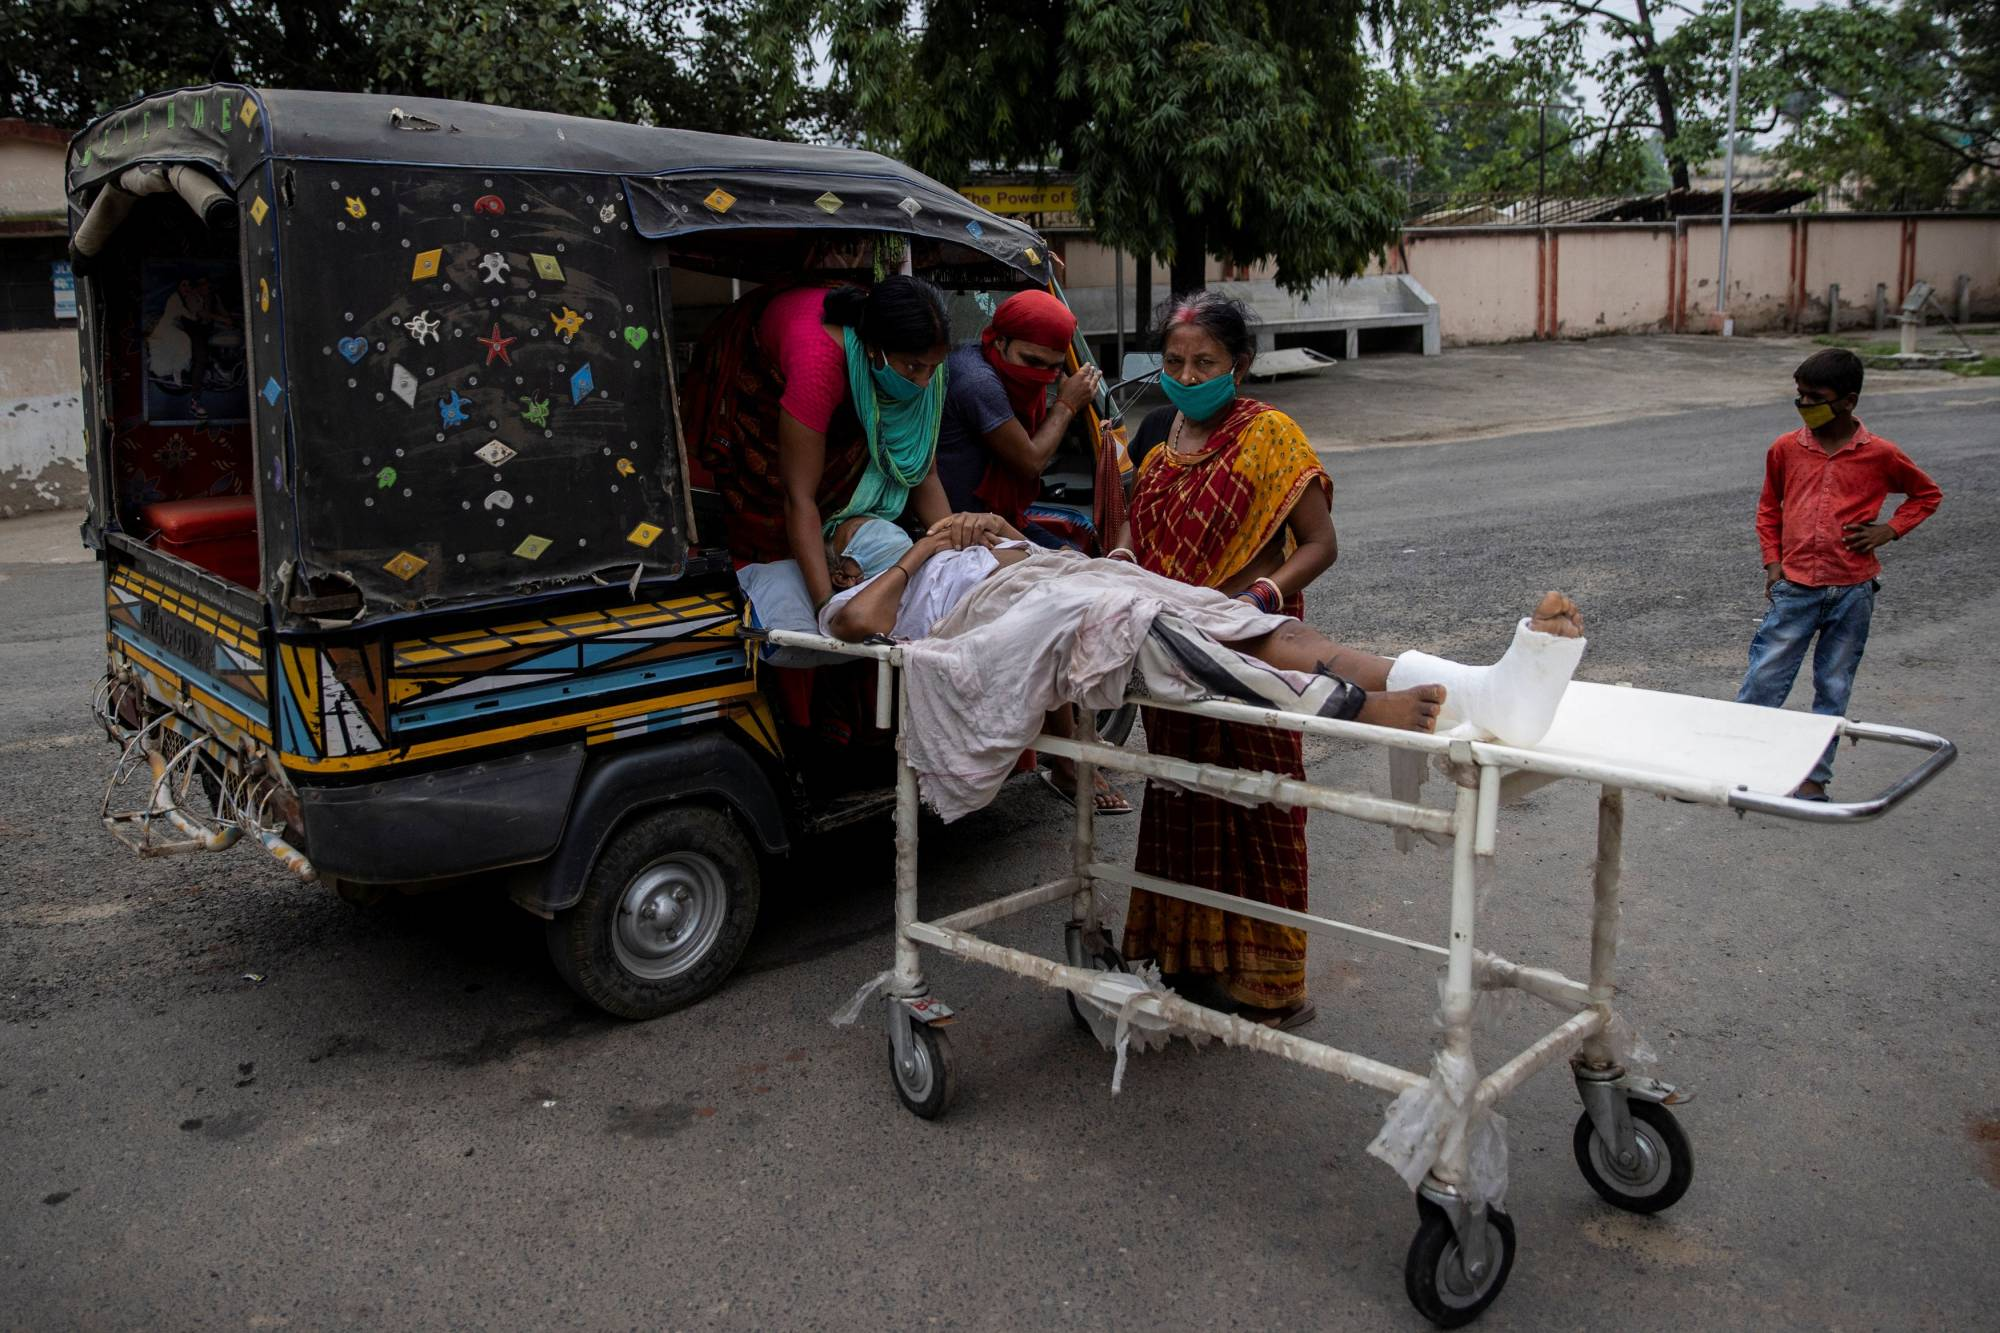 A patient is moved by relatives onto an auto-rickshaw as they take him home following treatment at Jawahar Lal Nehru Medical College and Hospital in Bhagalpur, India. | REUTERS